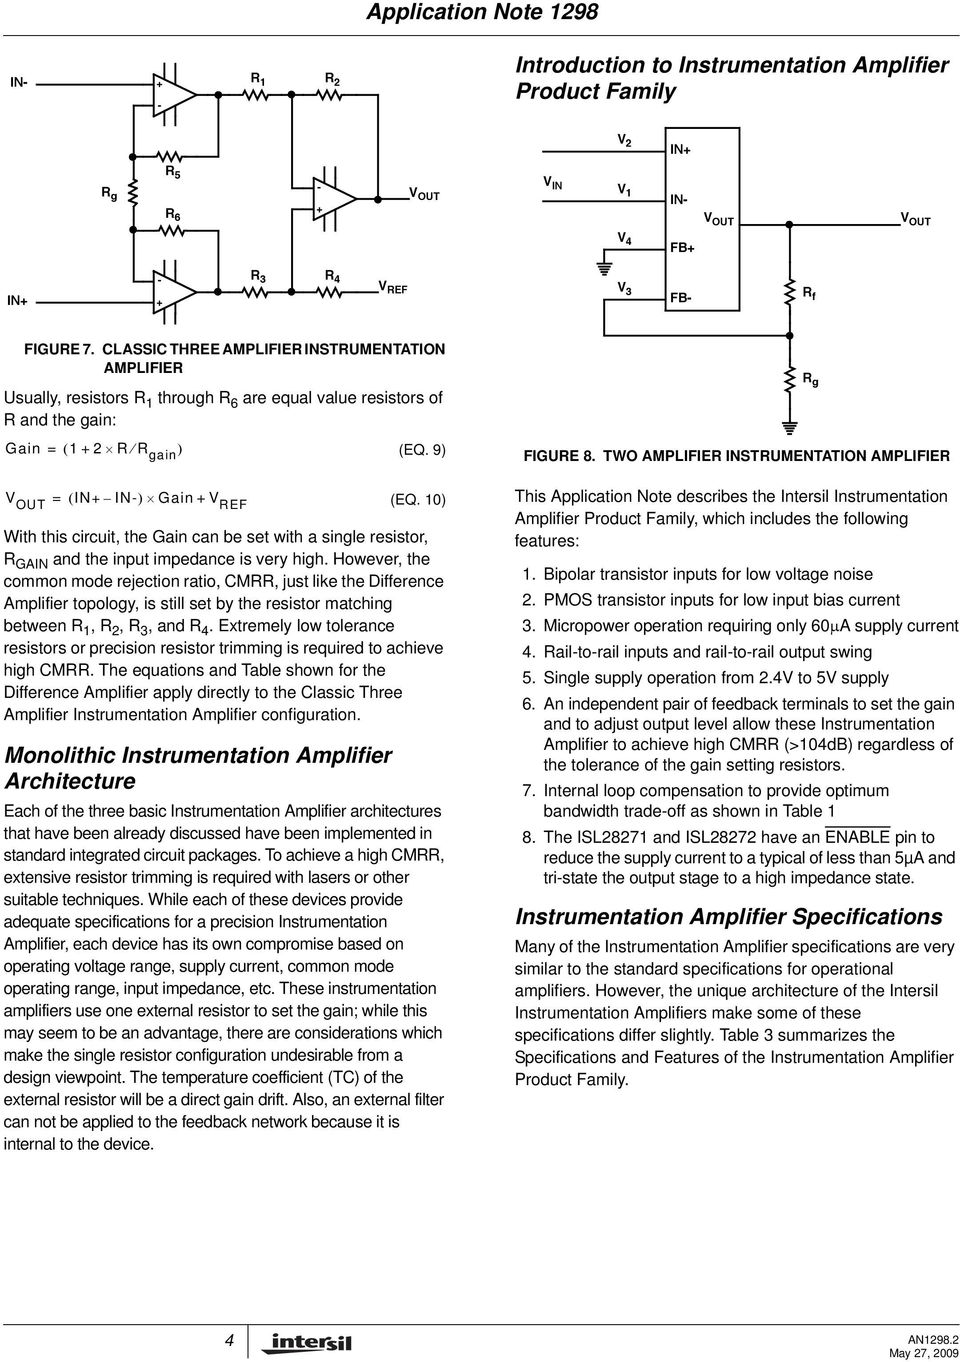 Instrumentation Amplifier Application Note Pdf Dual Power Quad Opamp Circuit Filtercircuit Basiccircuit 10 With This The Gain Can Be Set A Single Resistor